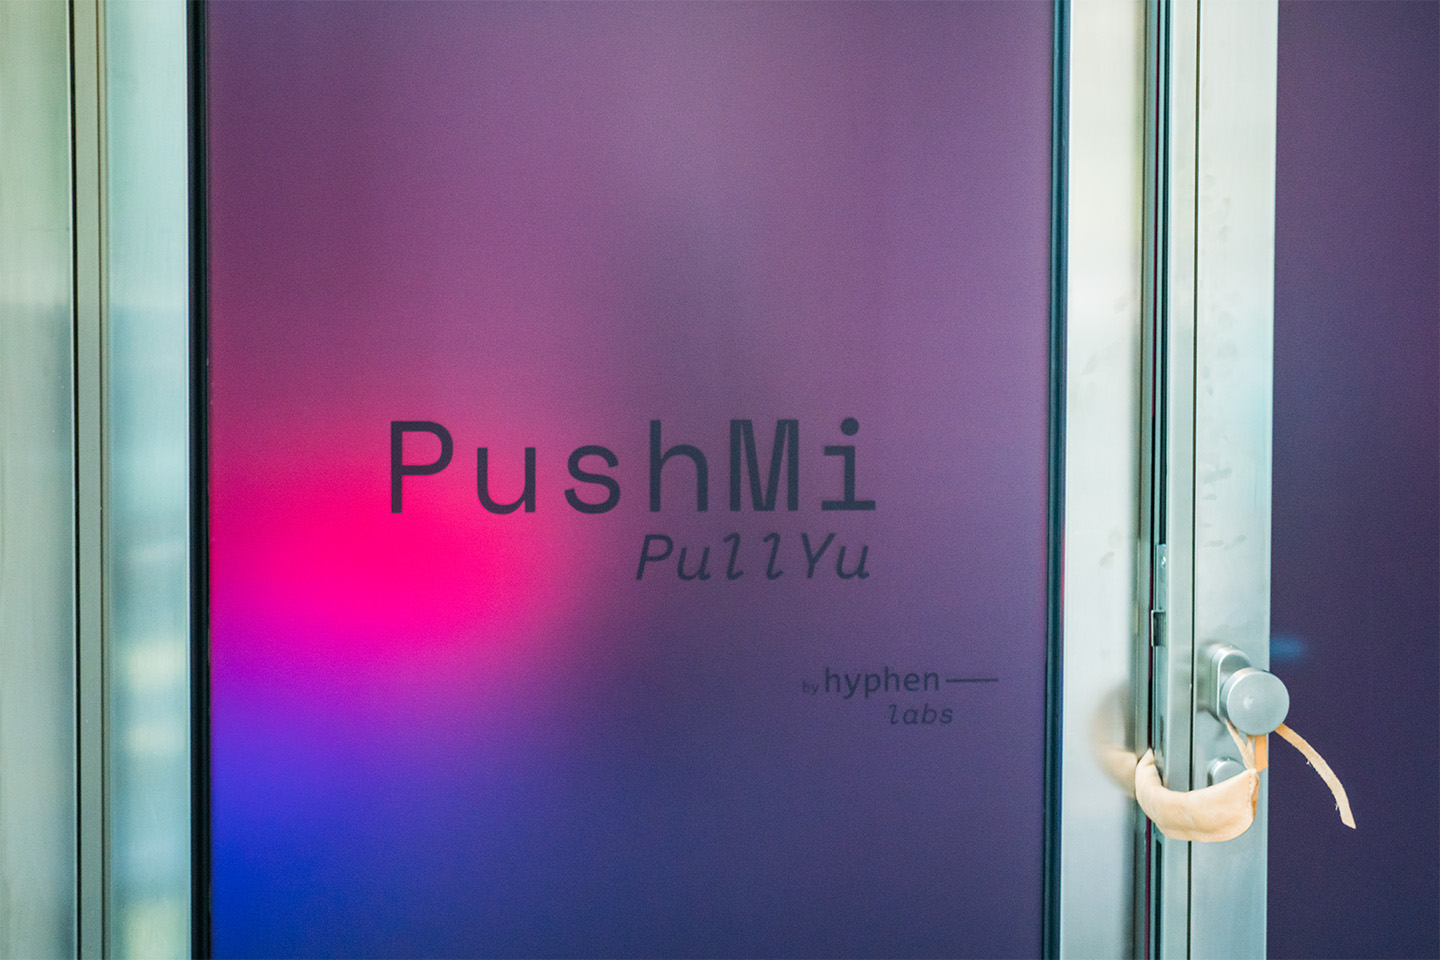 Hyphen-Labs: PushMi PullYu, entrance